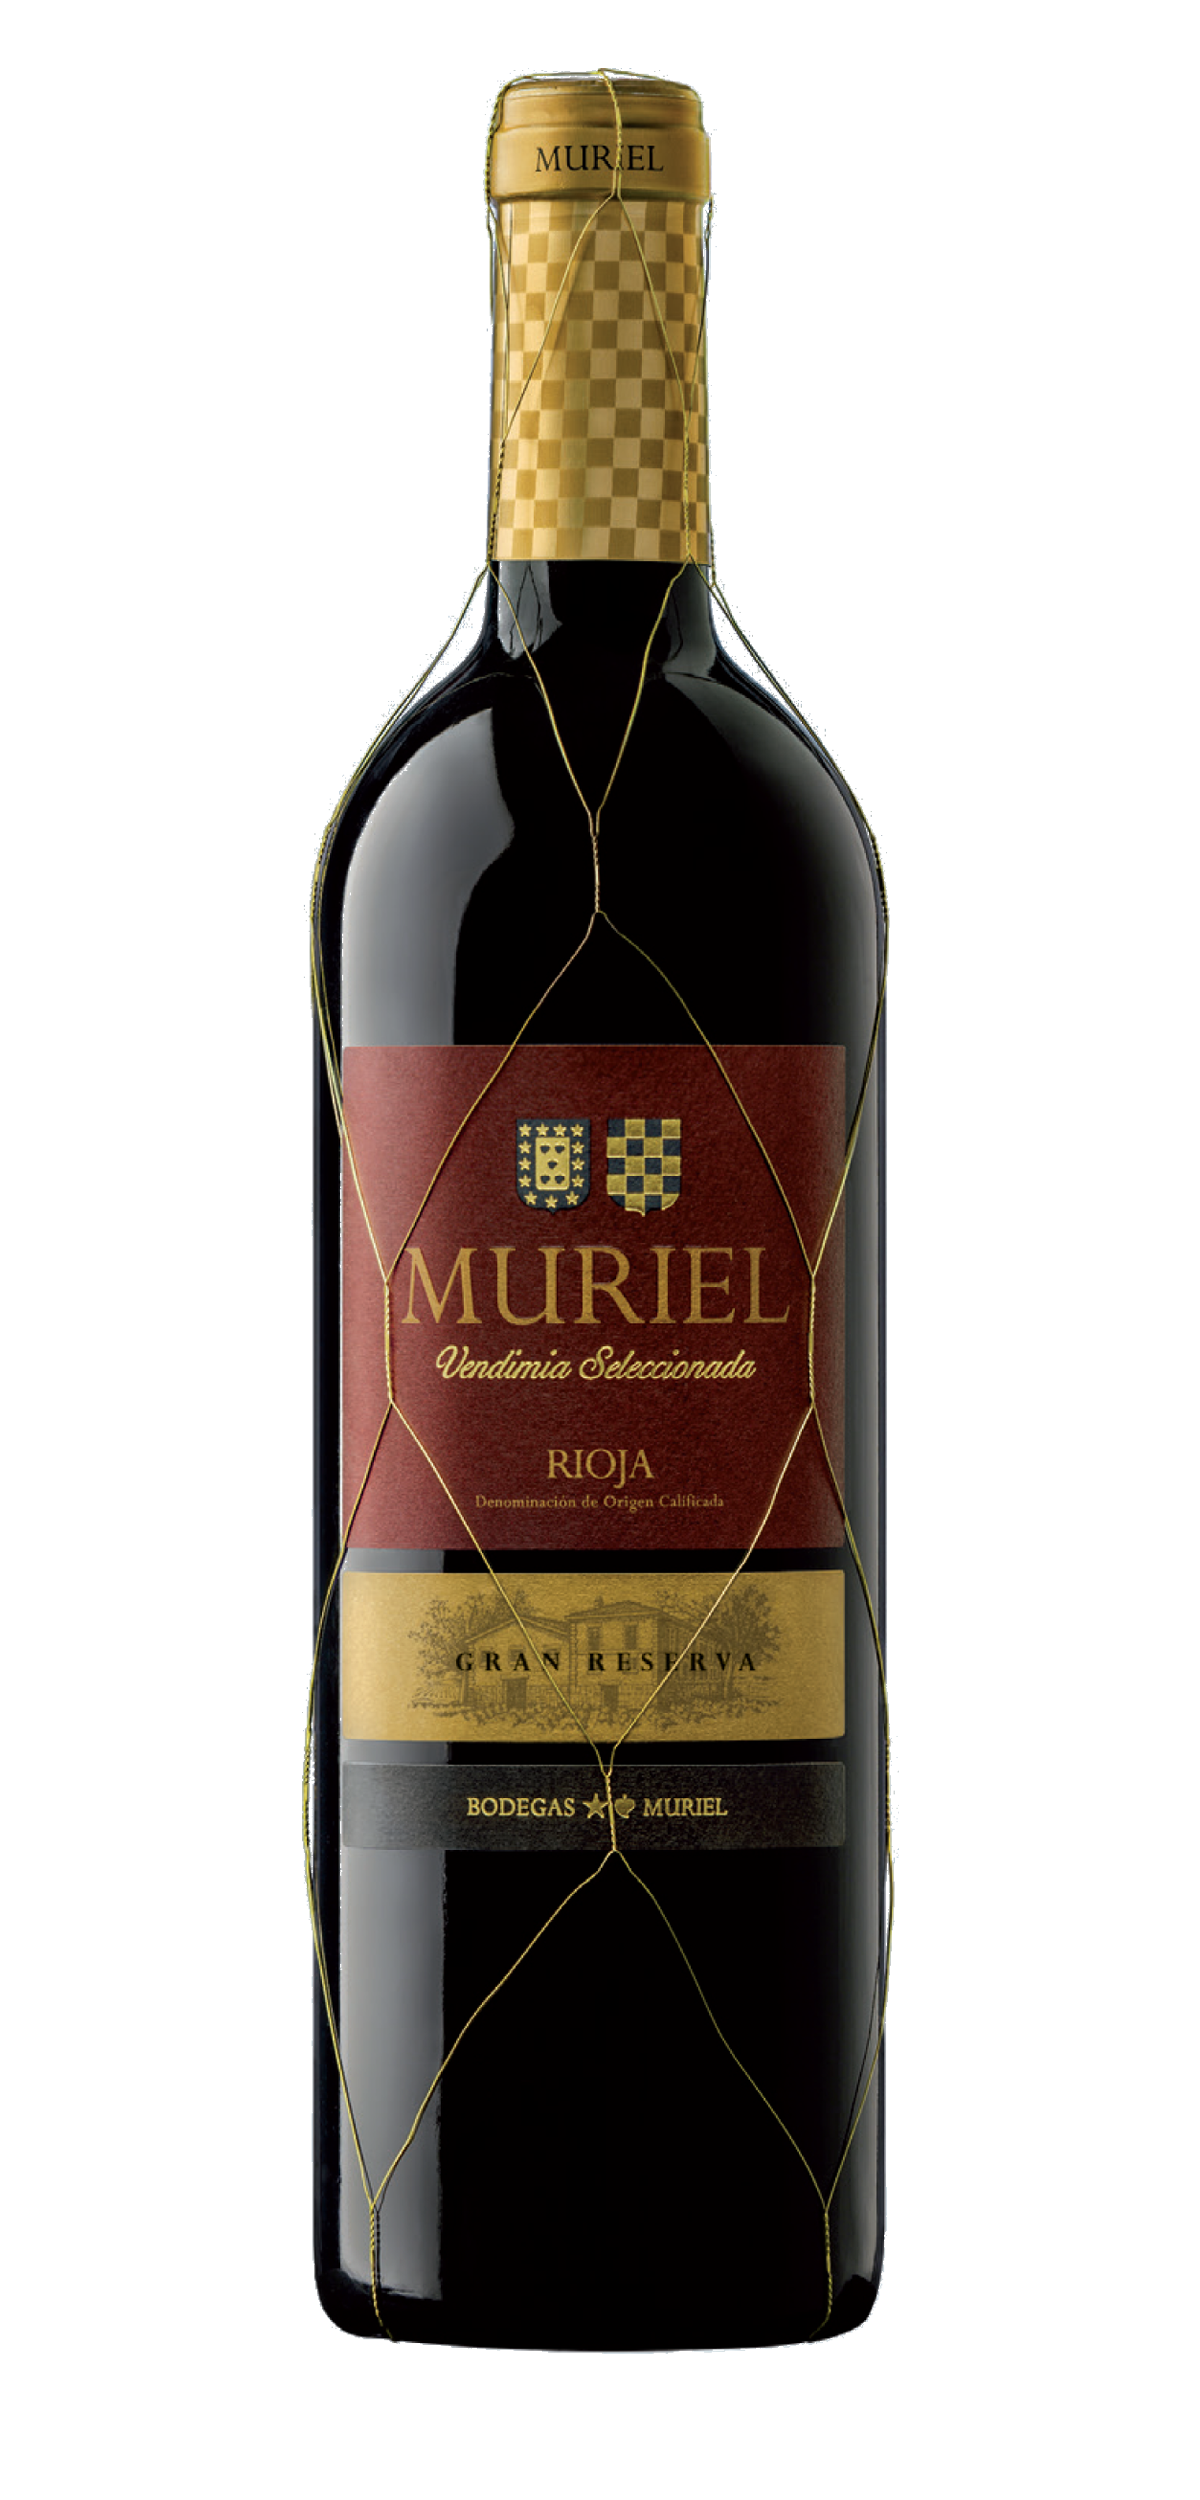 Muriel Vendimia Seleccionada wine bottle design